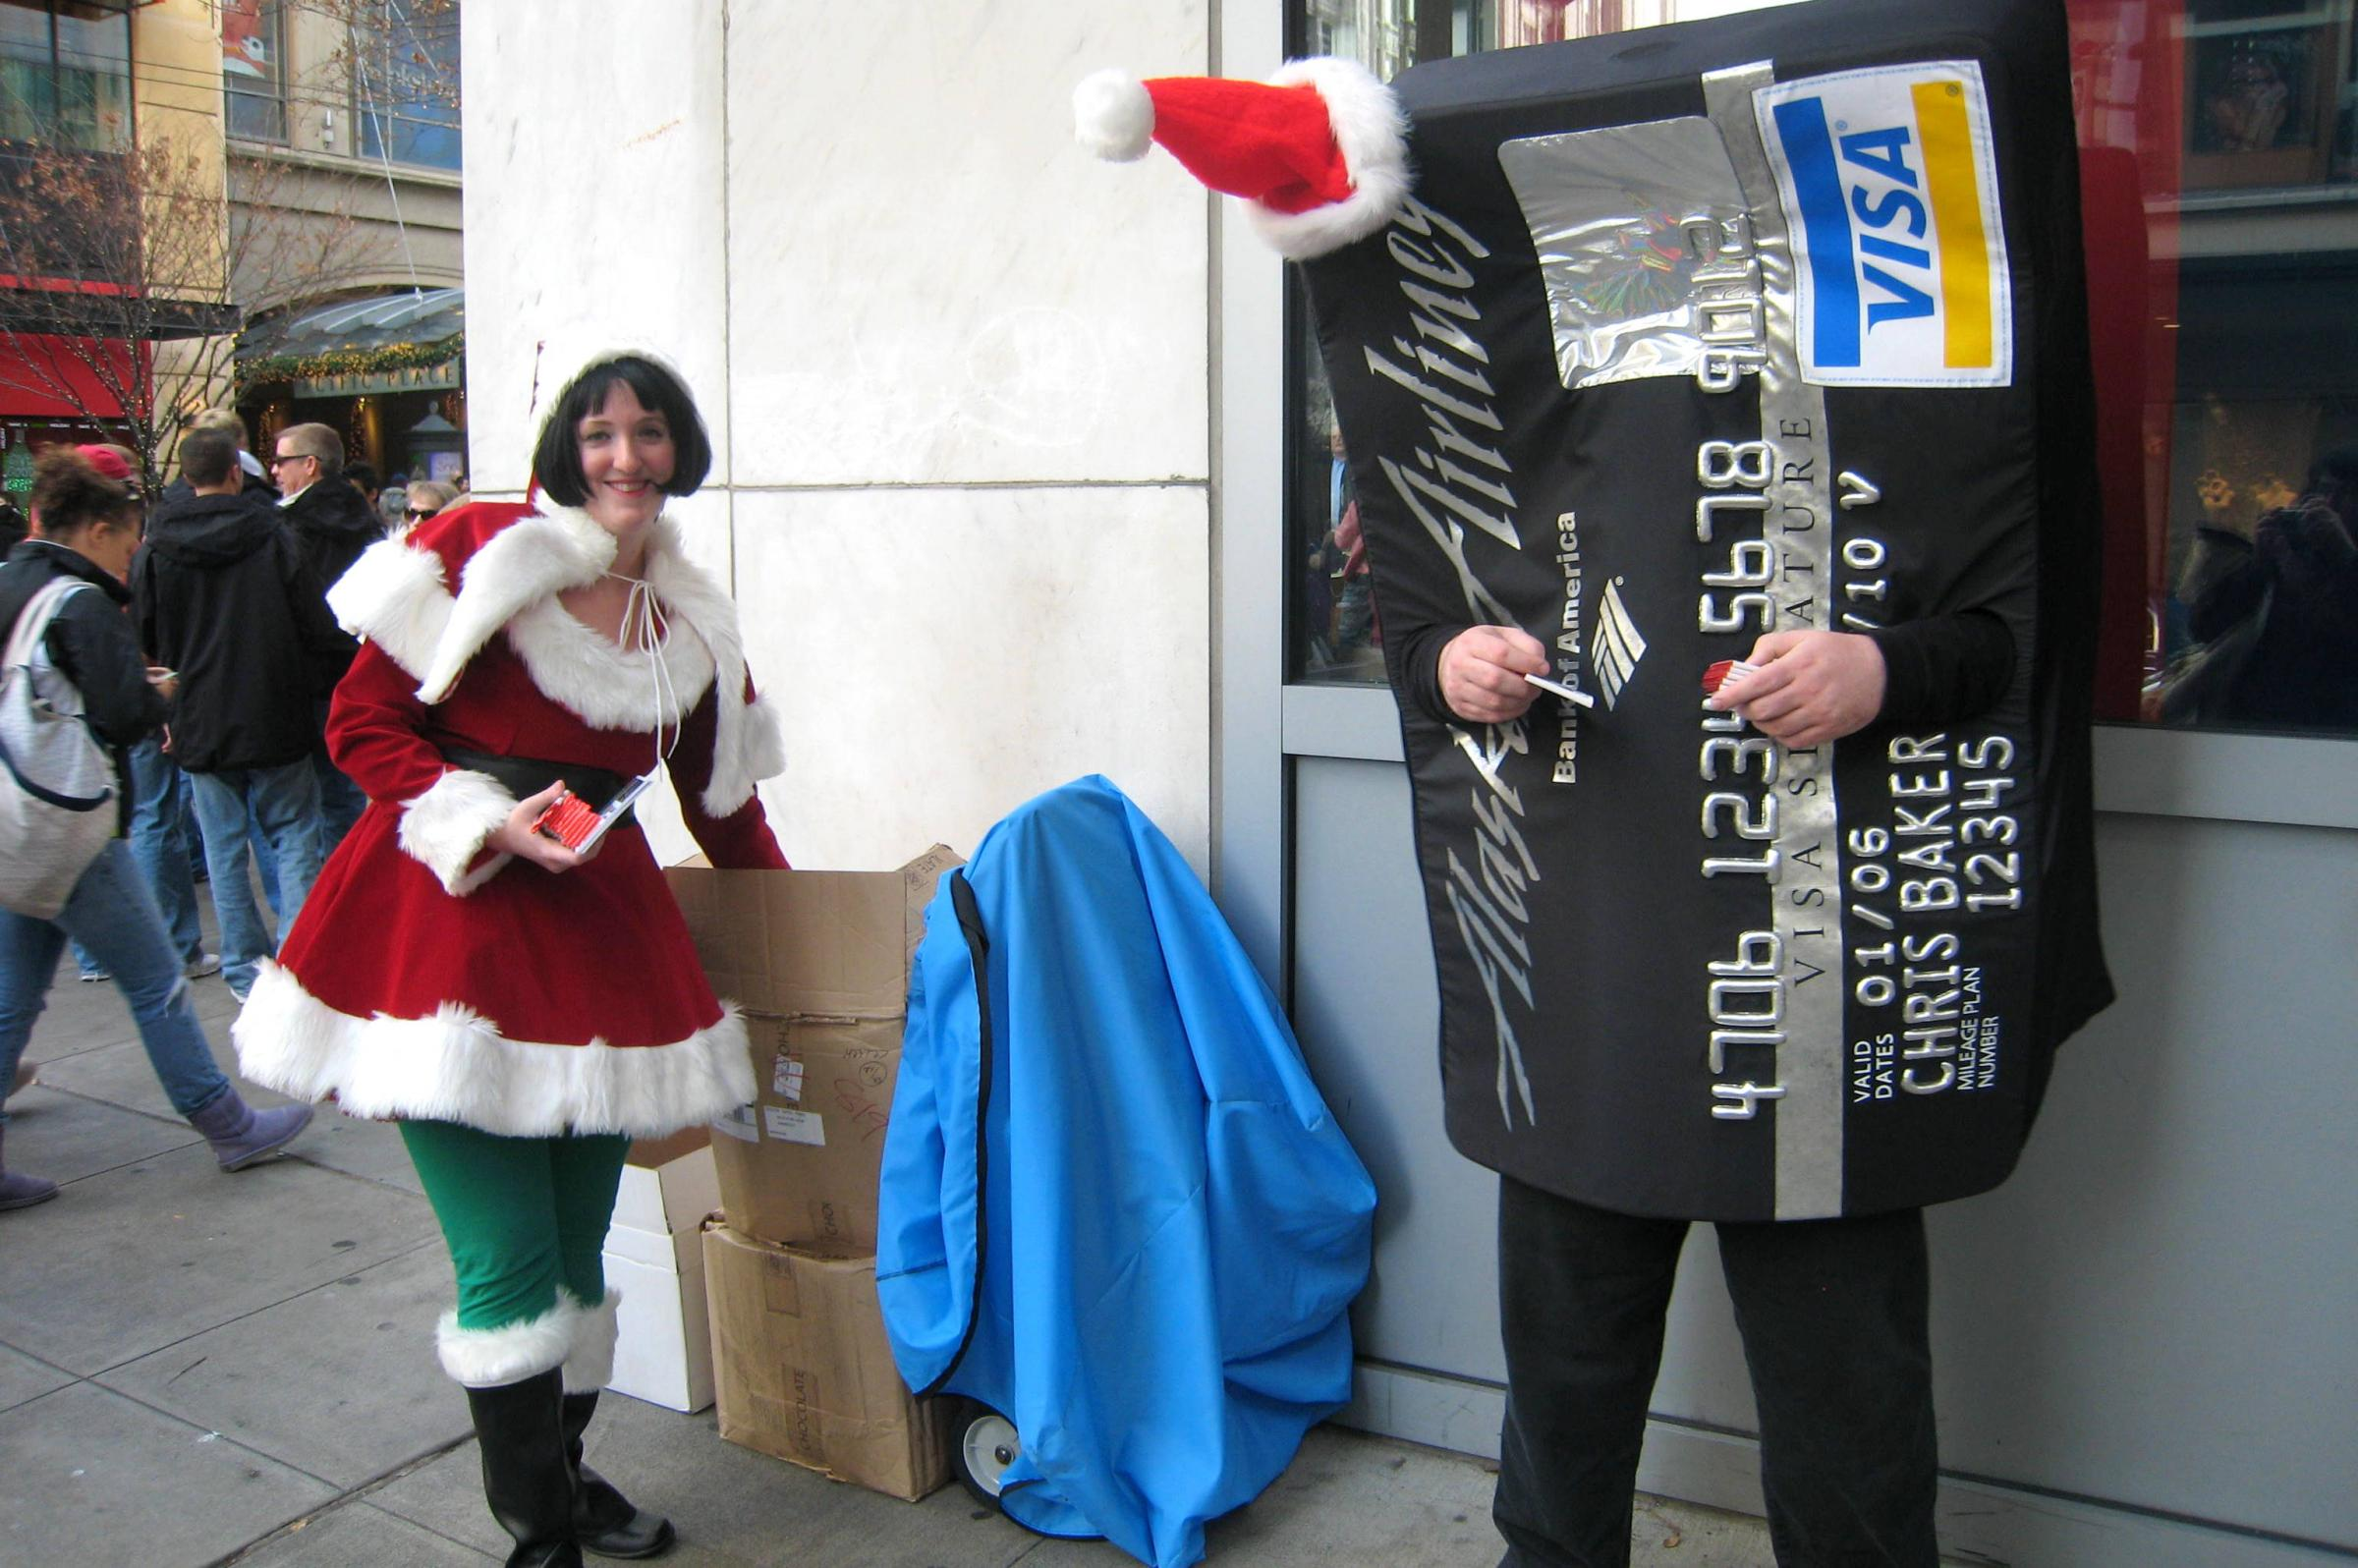 a christmas credit card promotion on seattle streets on black friday in 2007 occupy seattle protesters say they want to join the festivities not disrupt - Christmas Activities In Seattle